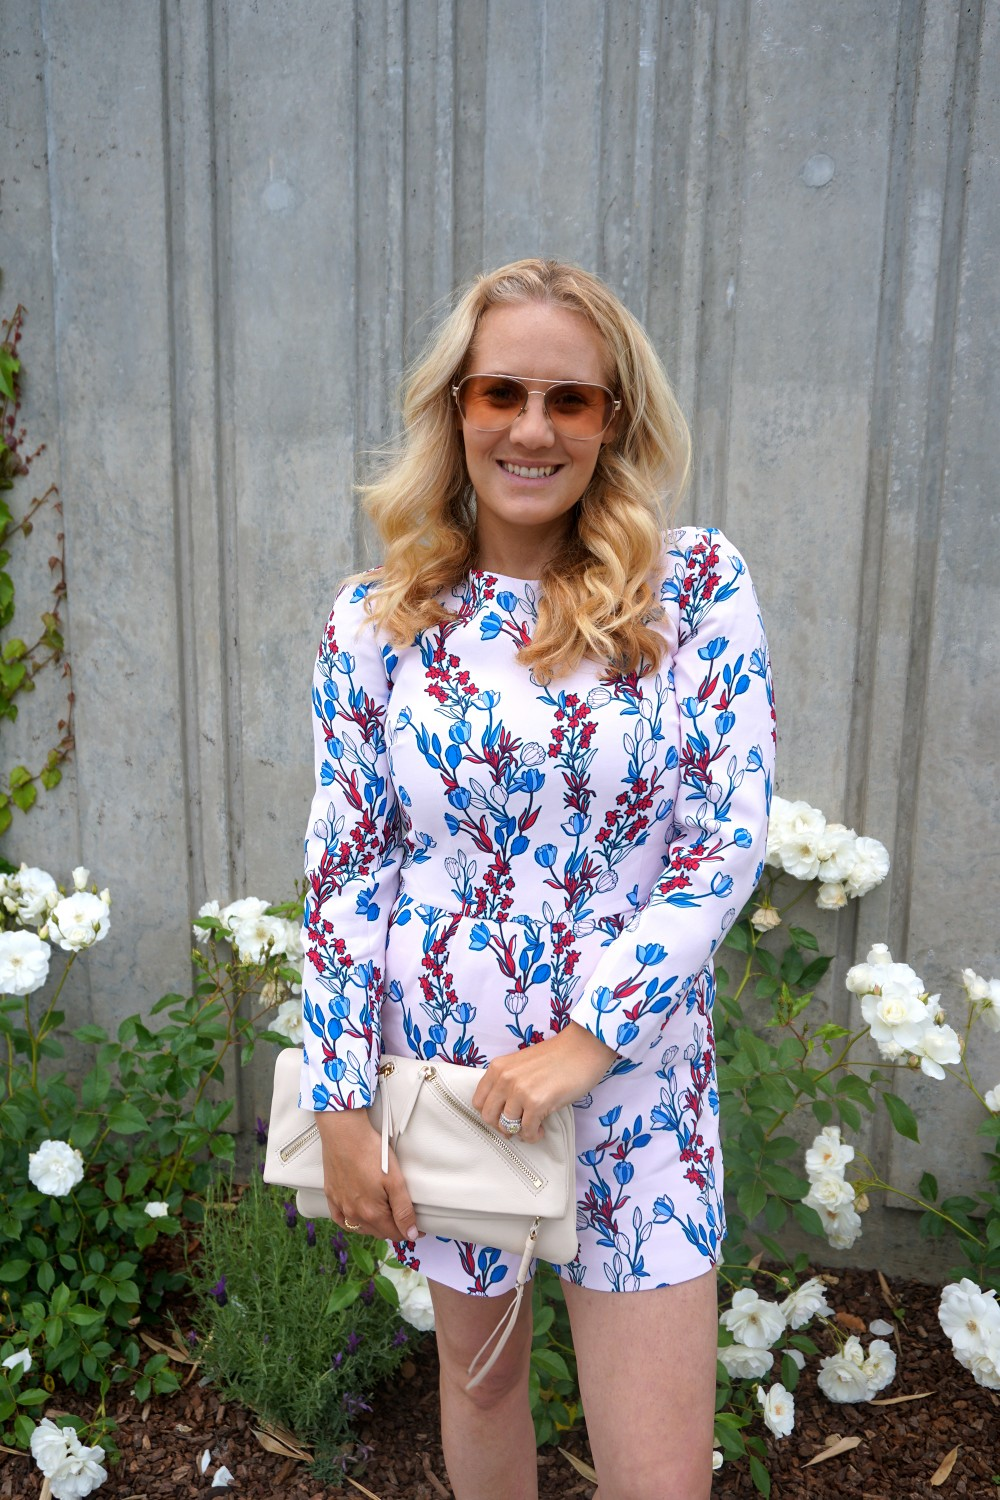 Draper James Romper-Outfit Inspiration-Spring Style-Spring Florals-Mom Style-Style Blogger-Have Need Want 2